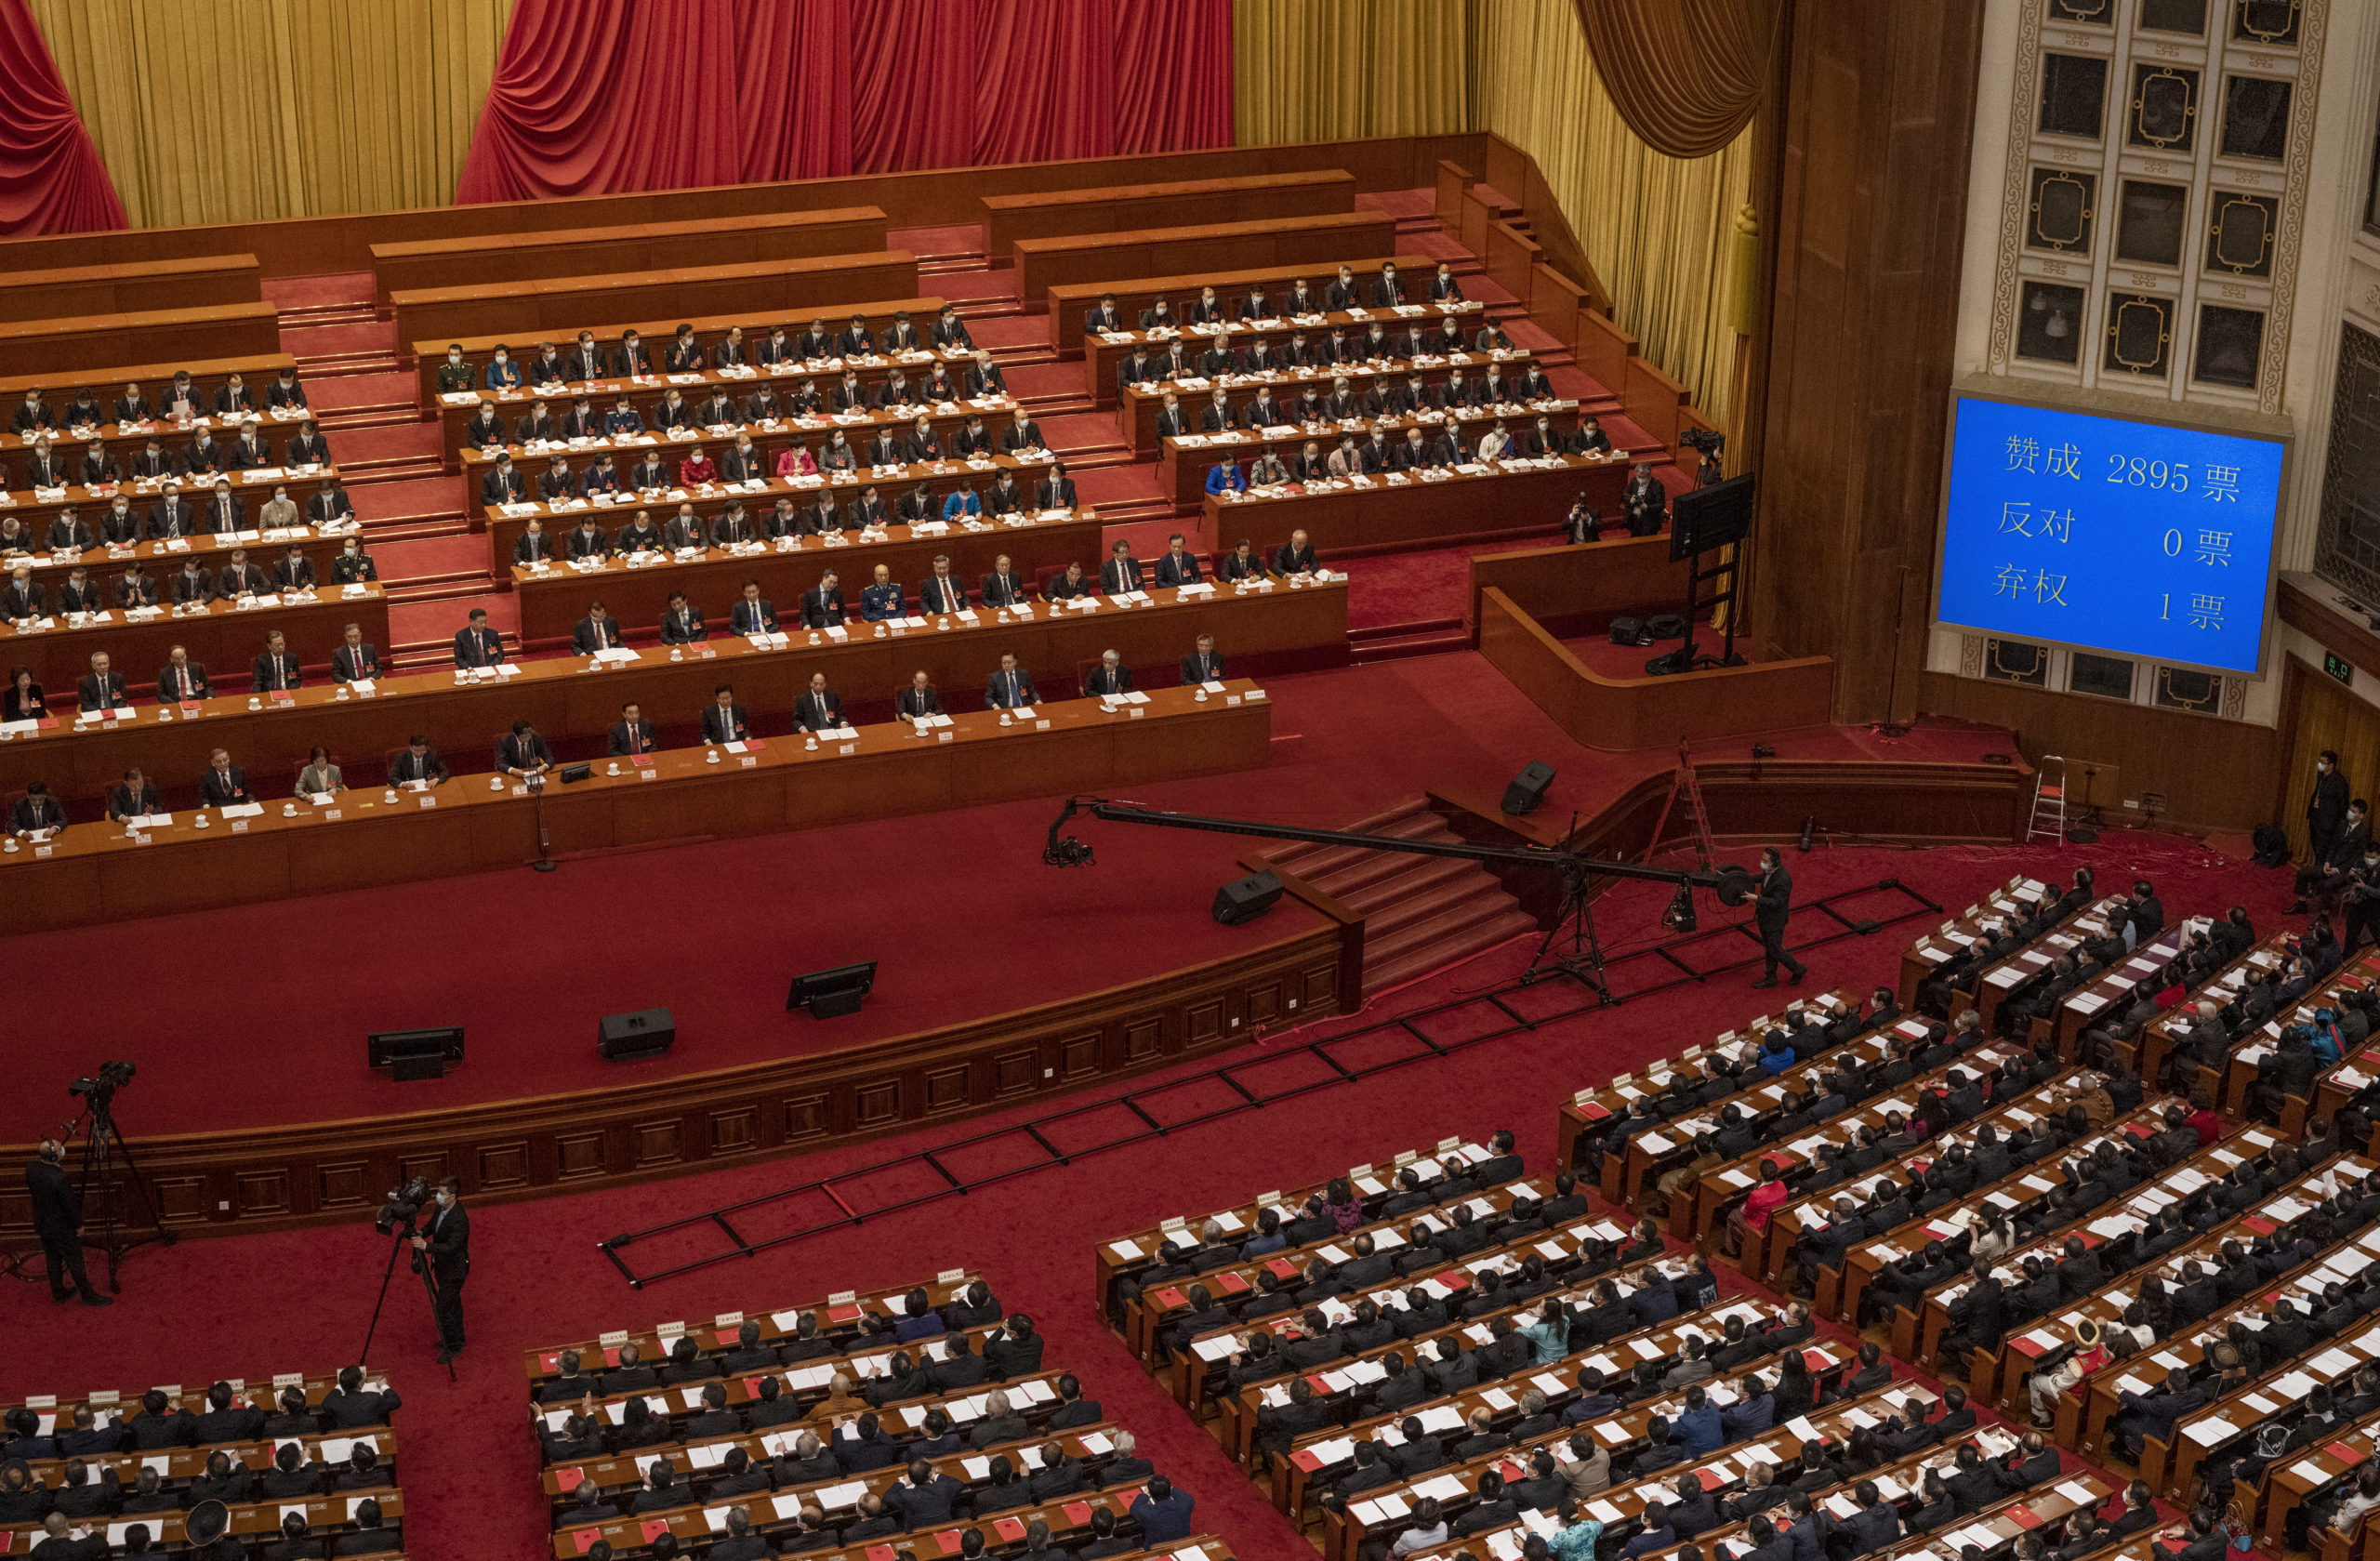 China's President Xi Jinping and lawmakers gather on March 11 in Beijing, China. (Kevin Frayer/Getty Images)